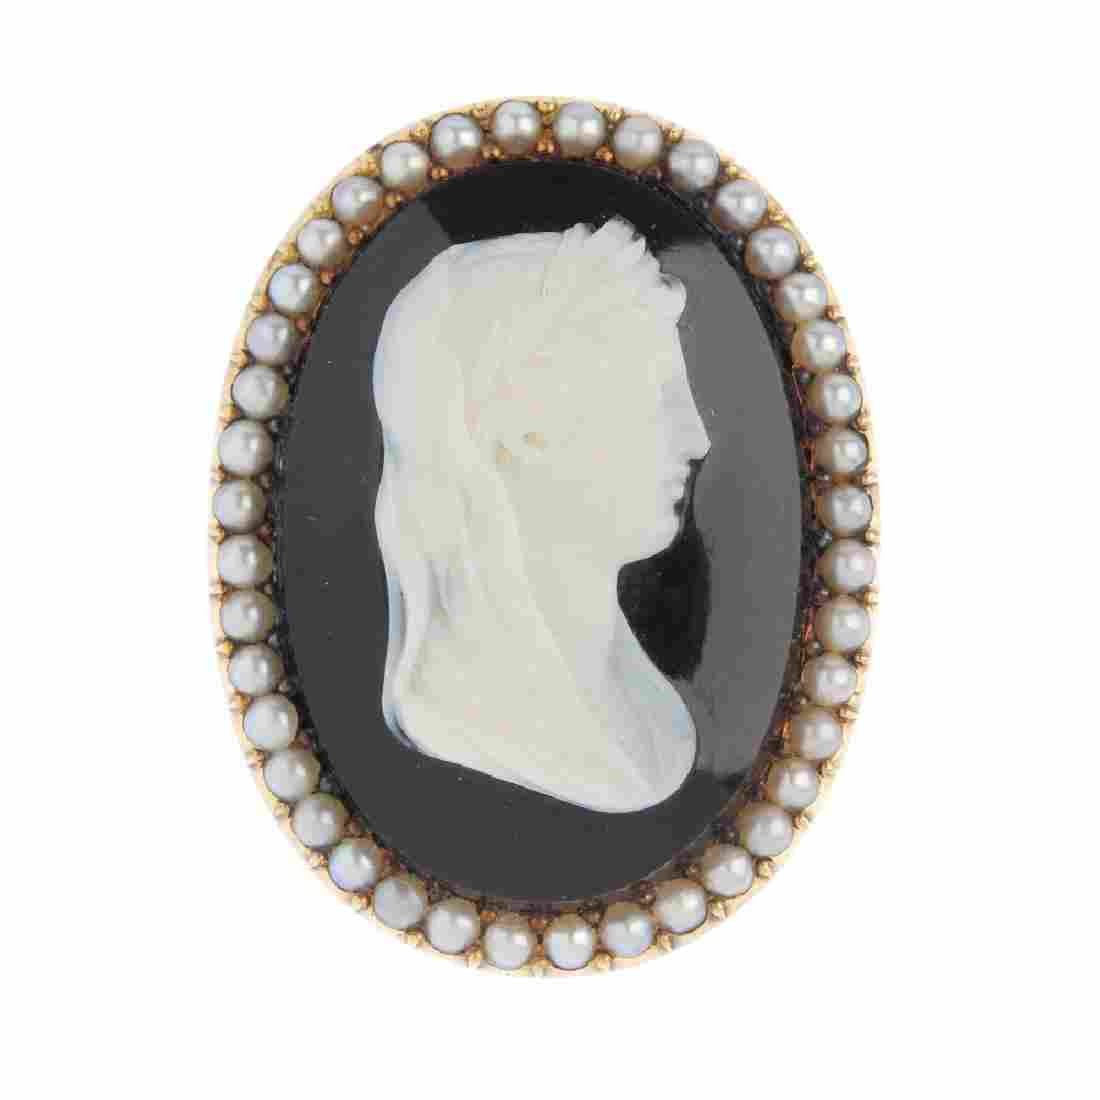 A late Victorian gold hardstone cameo pendant. Of oval